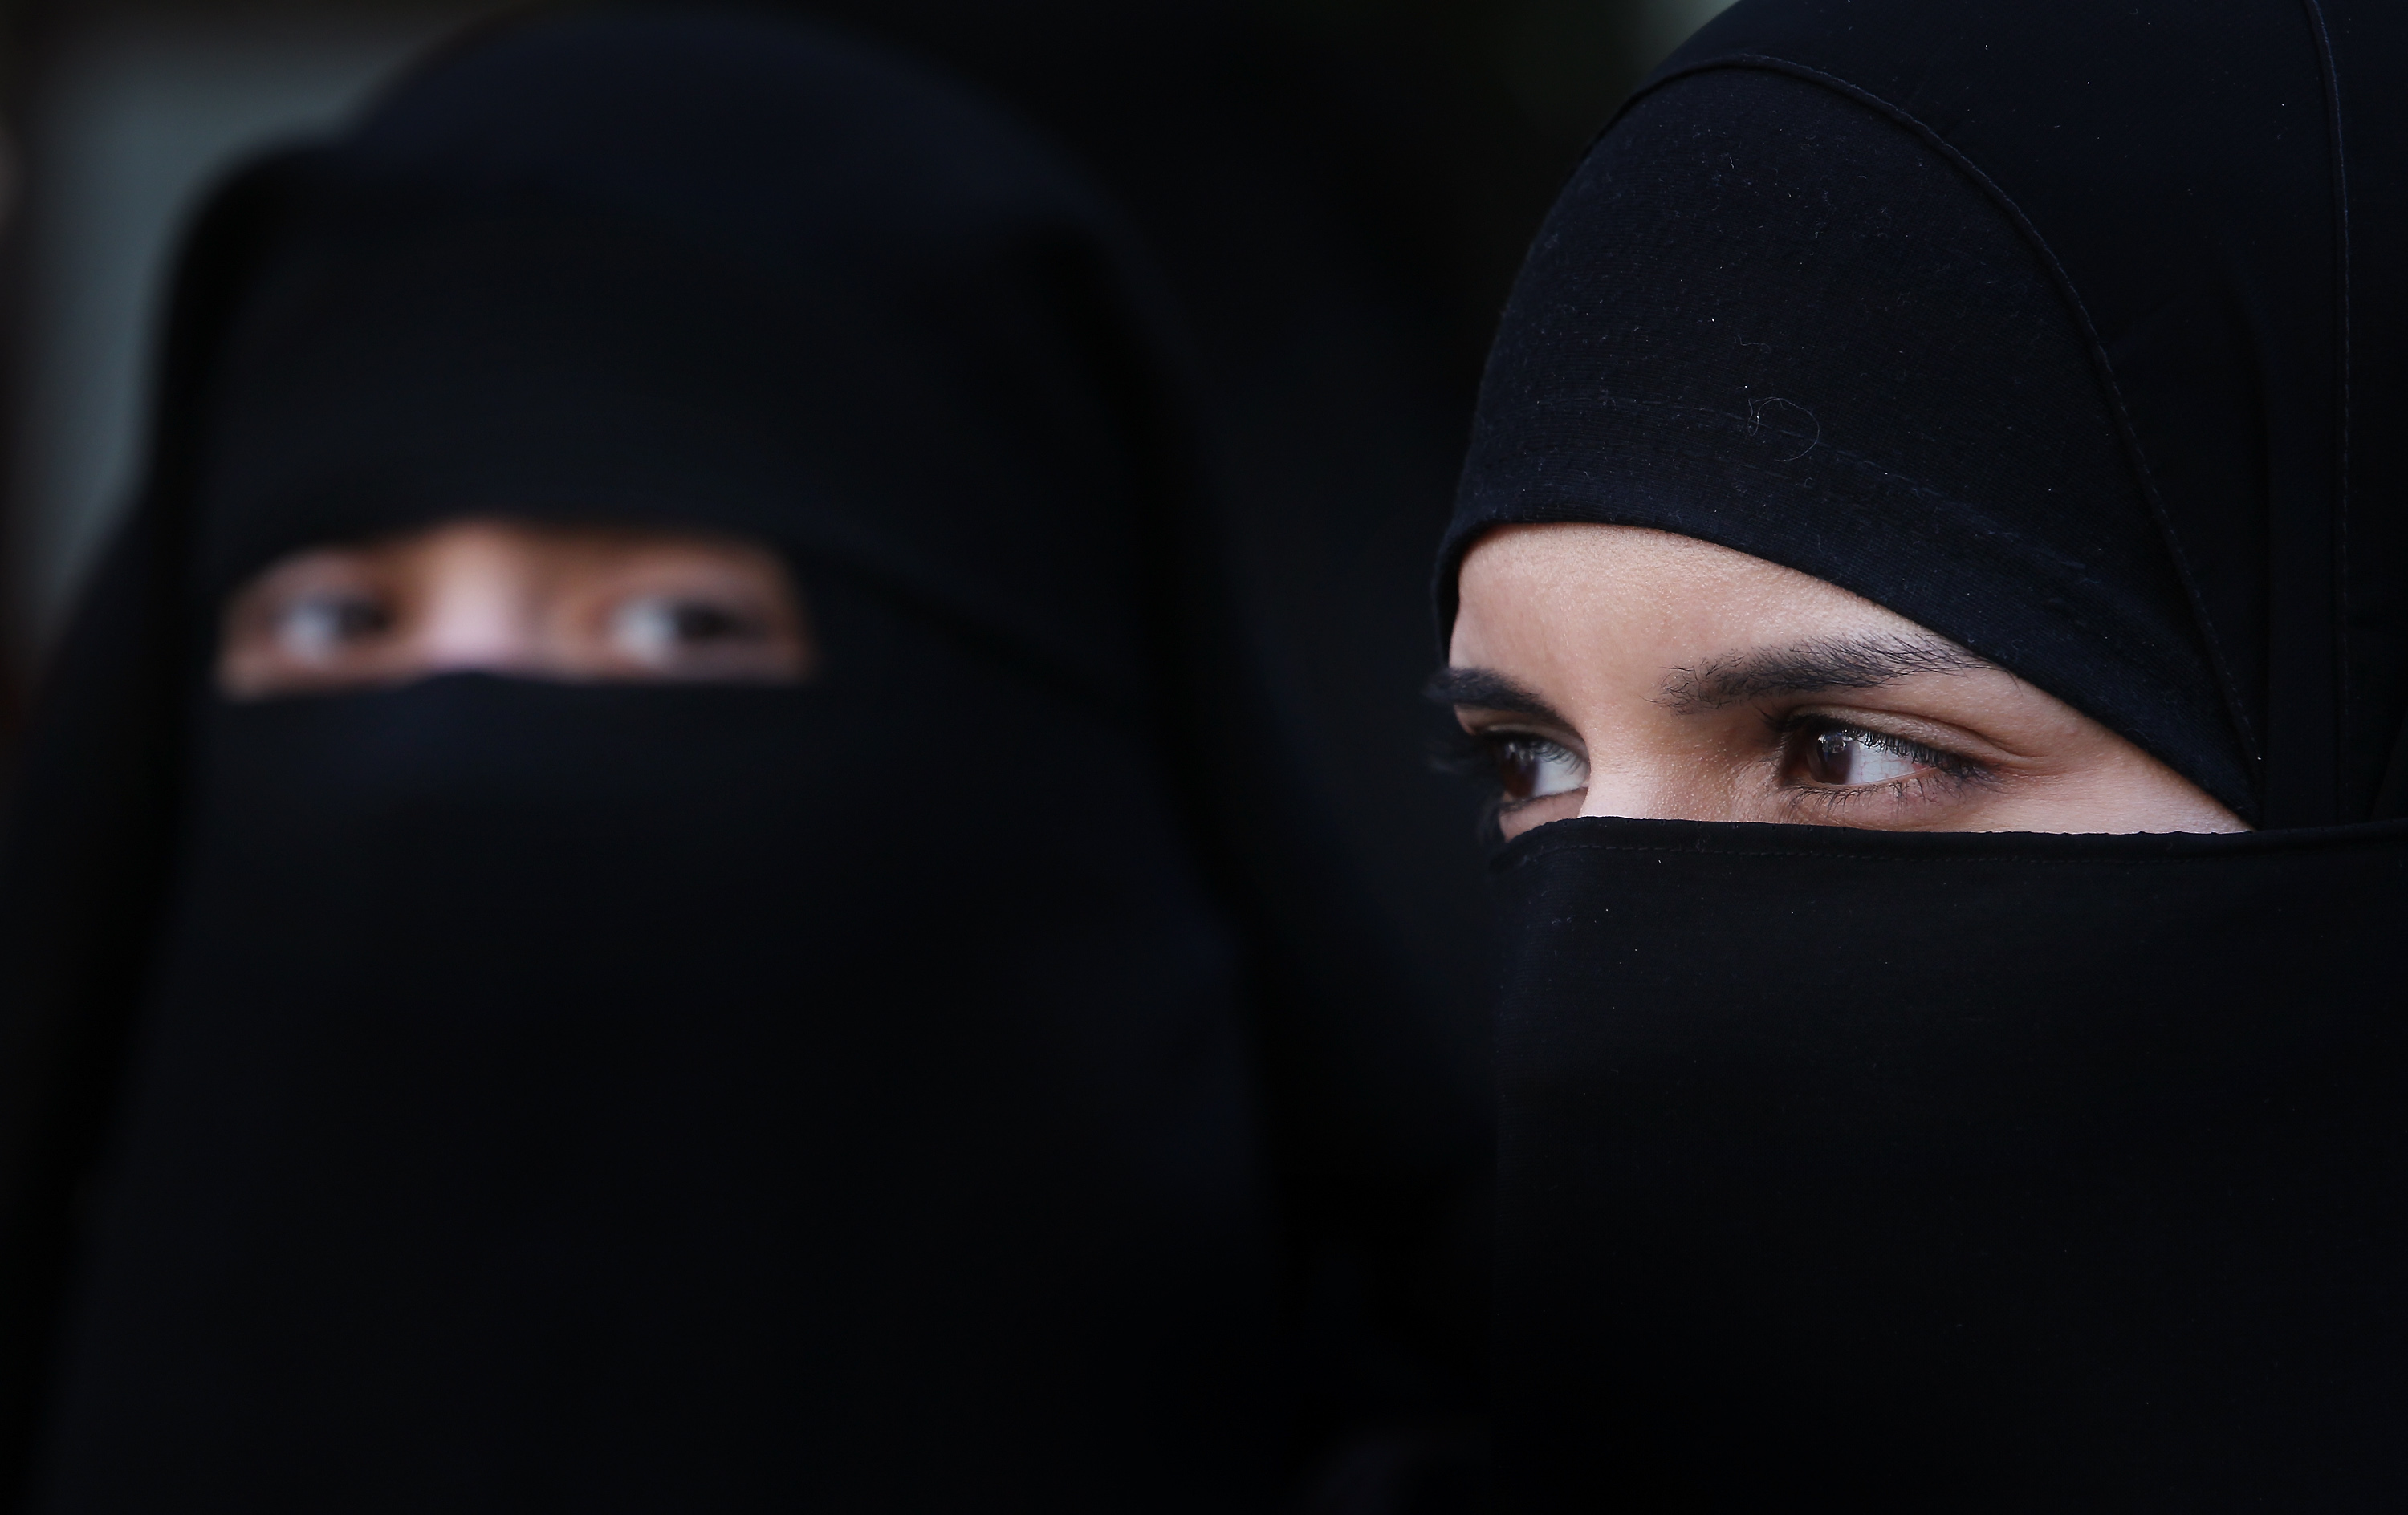 ISIS Have Banned The Burka After Security Concerns GettyImages 111976663 1